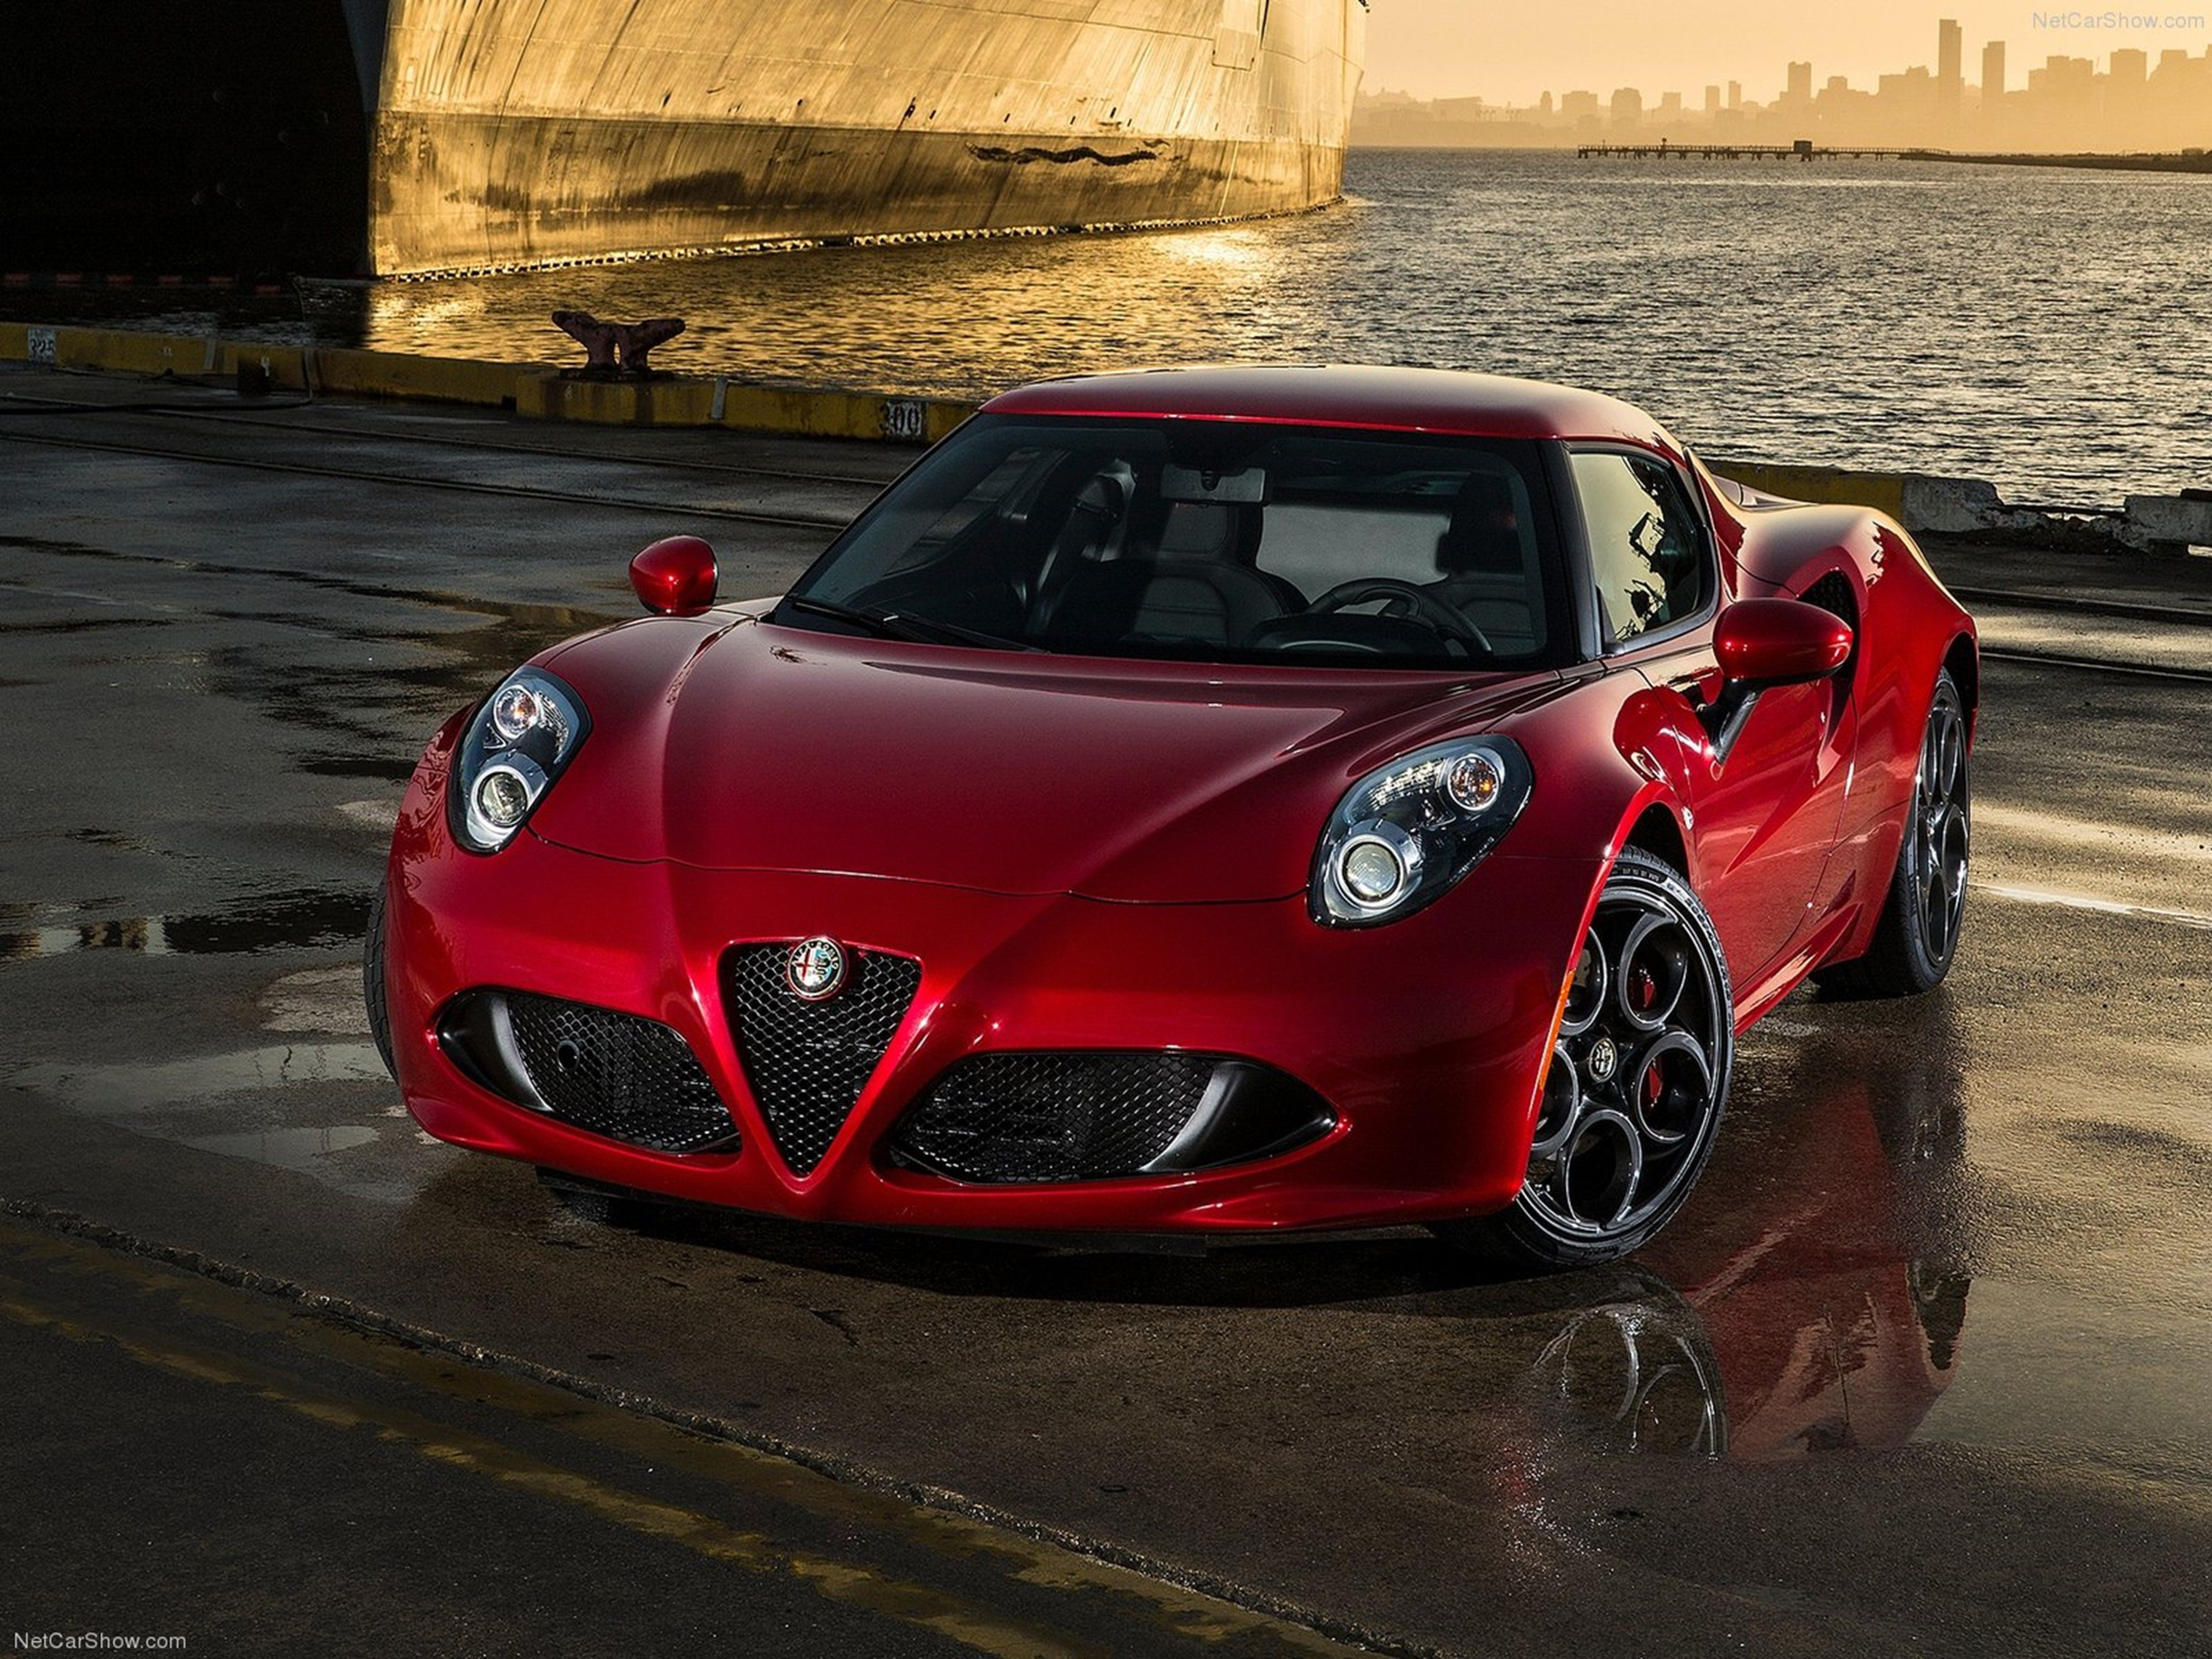 Alfa Romeo 4c Coupe Us Version 2015 Car Italy Supercar Sport Sportcar Supersport Italian Wallpaper 4000x